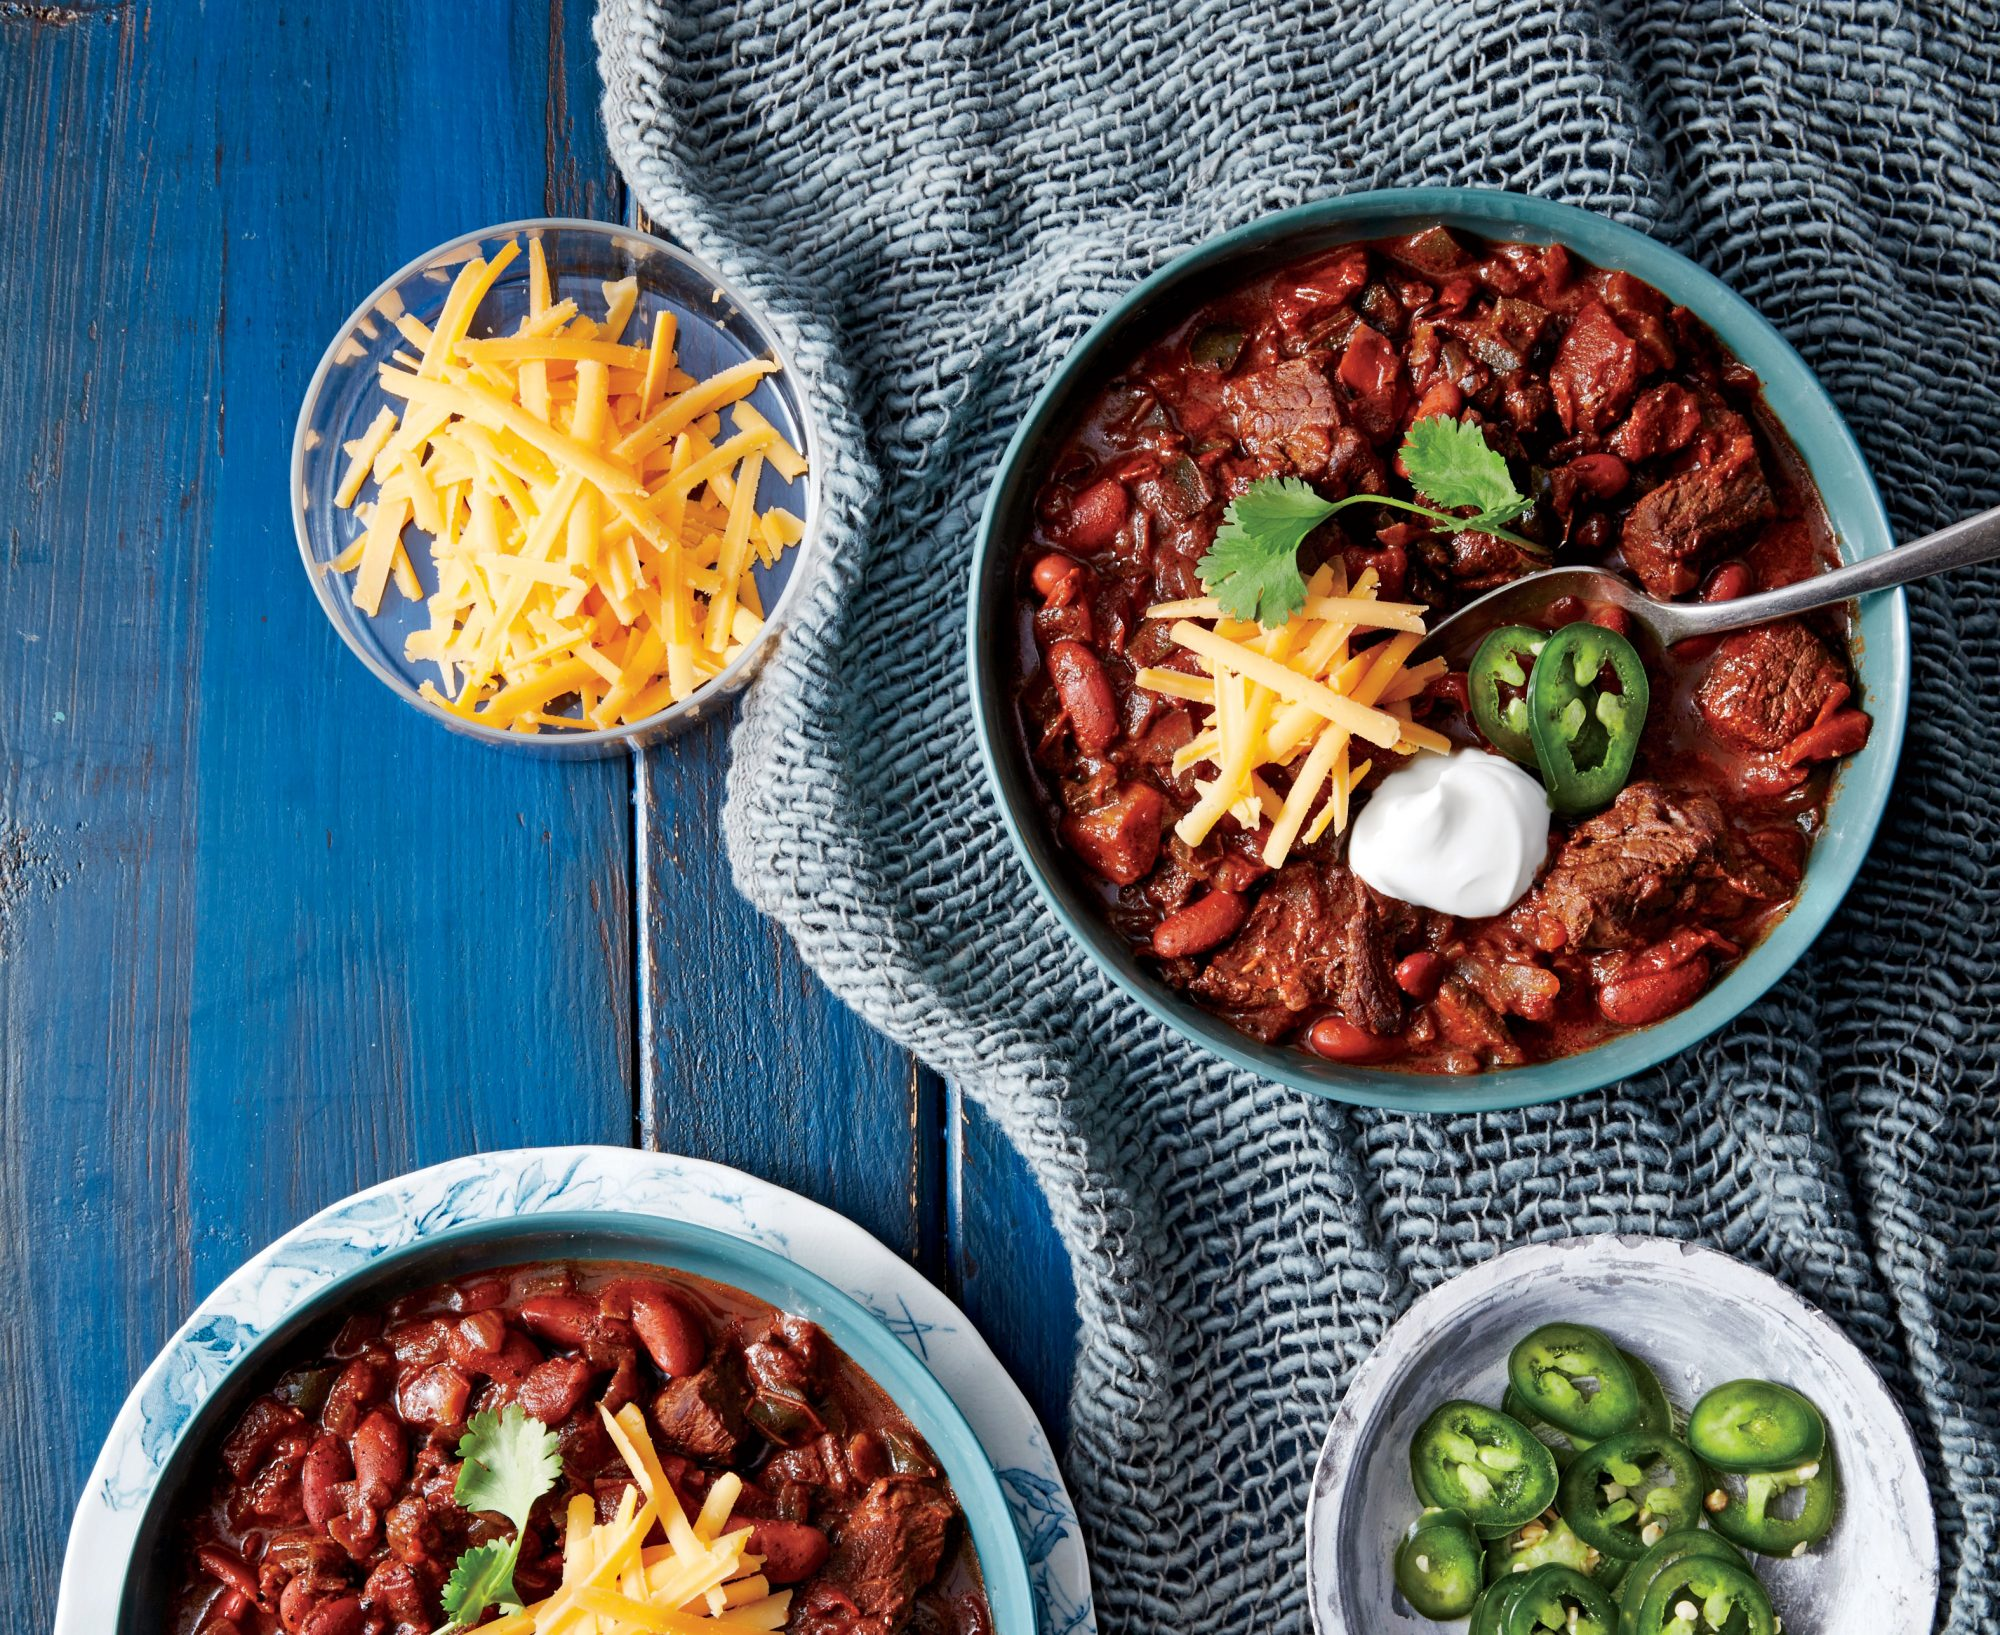 7 Ingredients You Wouldn't Think to Put In Your Chili, But Definitely Should